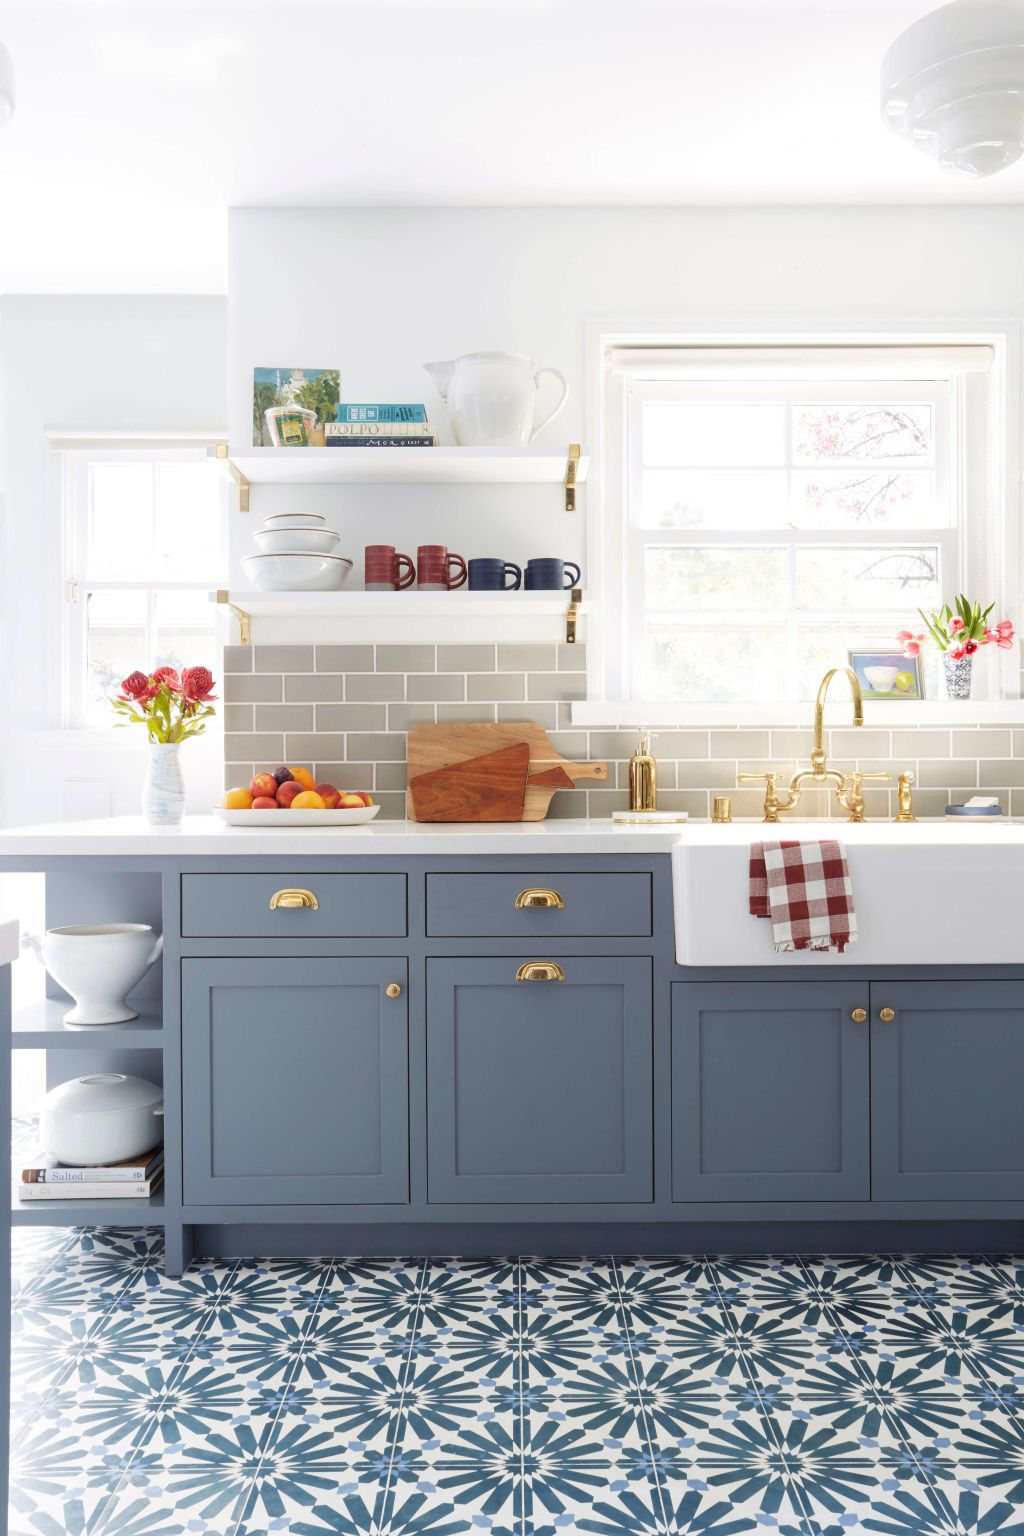 How To Style Open Shelving - Emily Henderson  Trendy kitchen